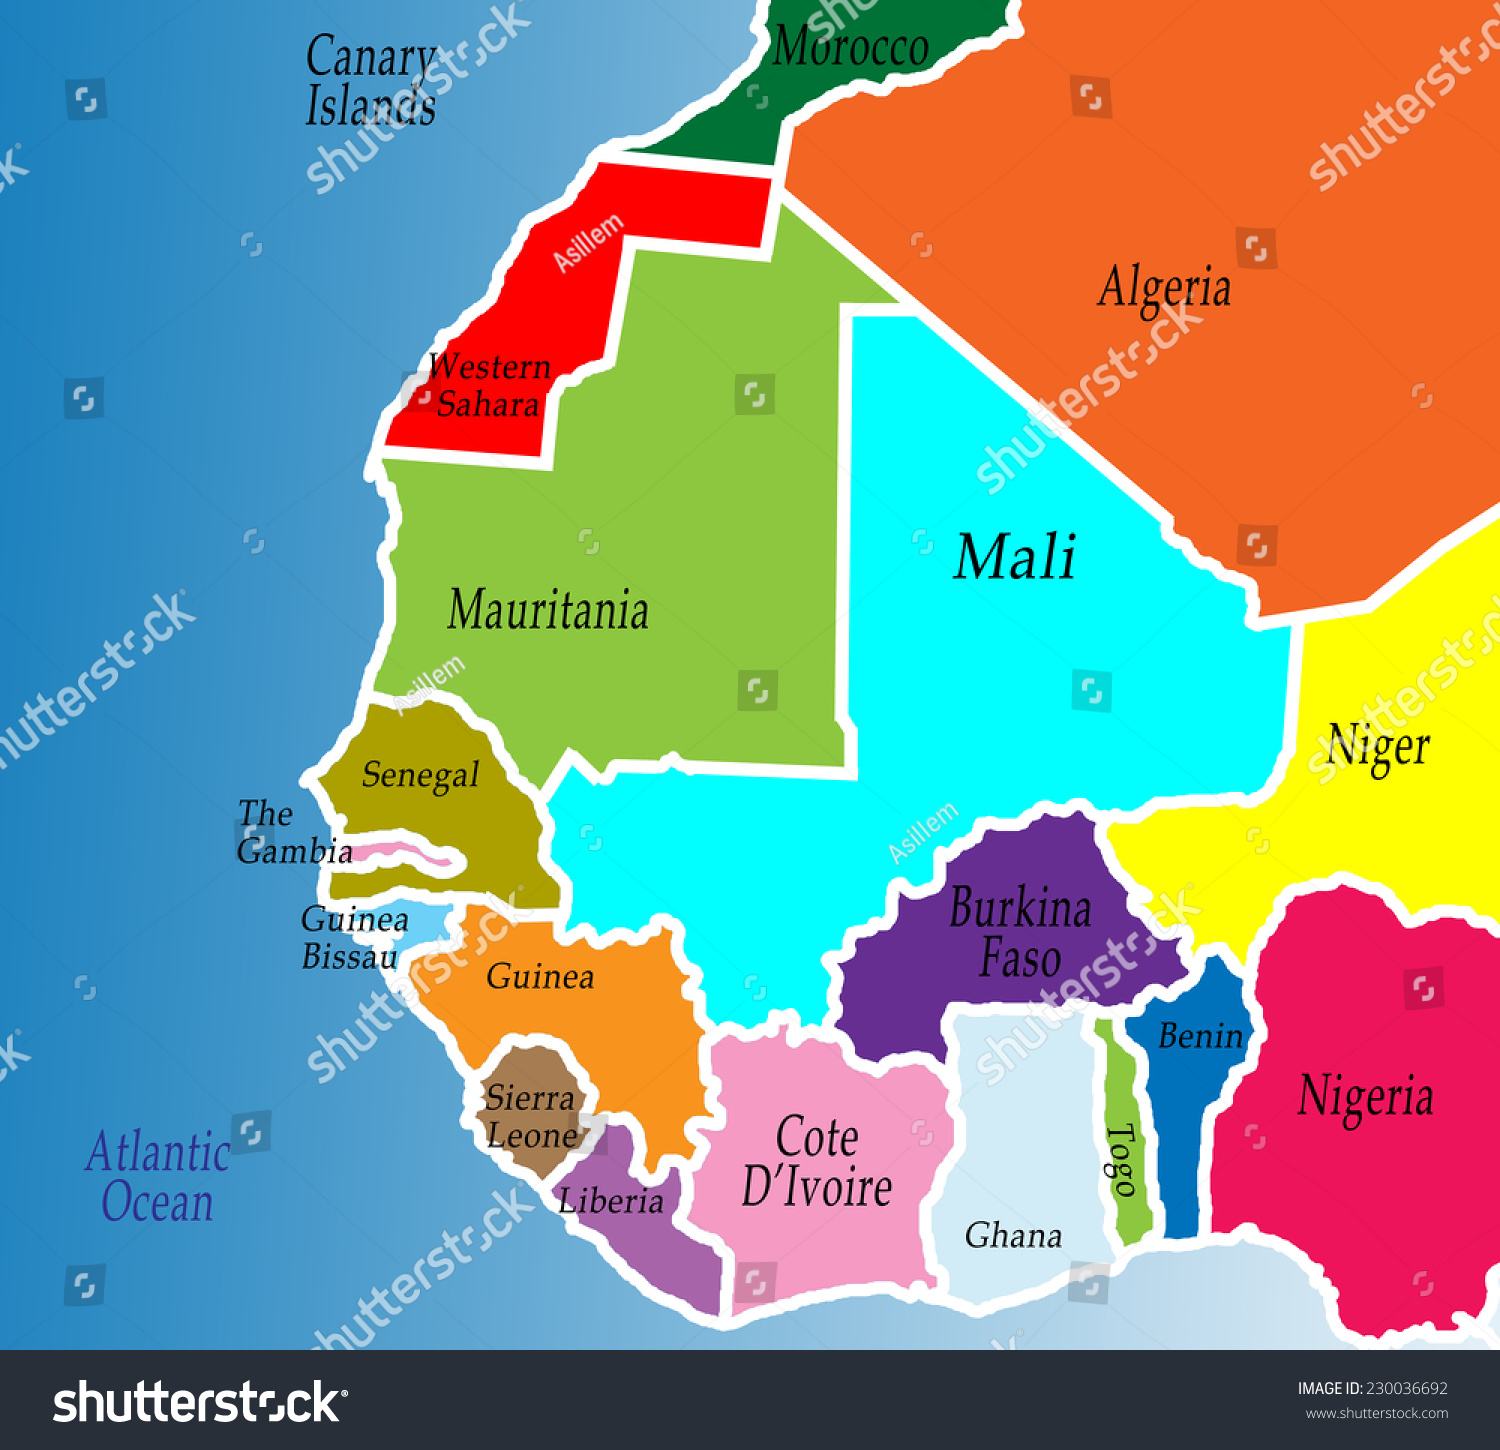 clipart west africa - photo #50